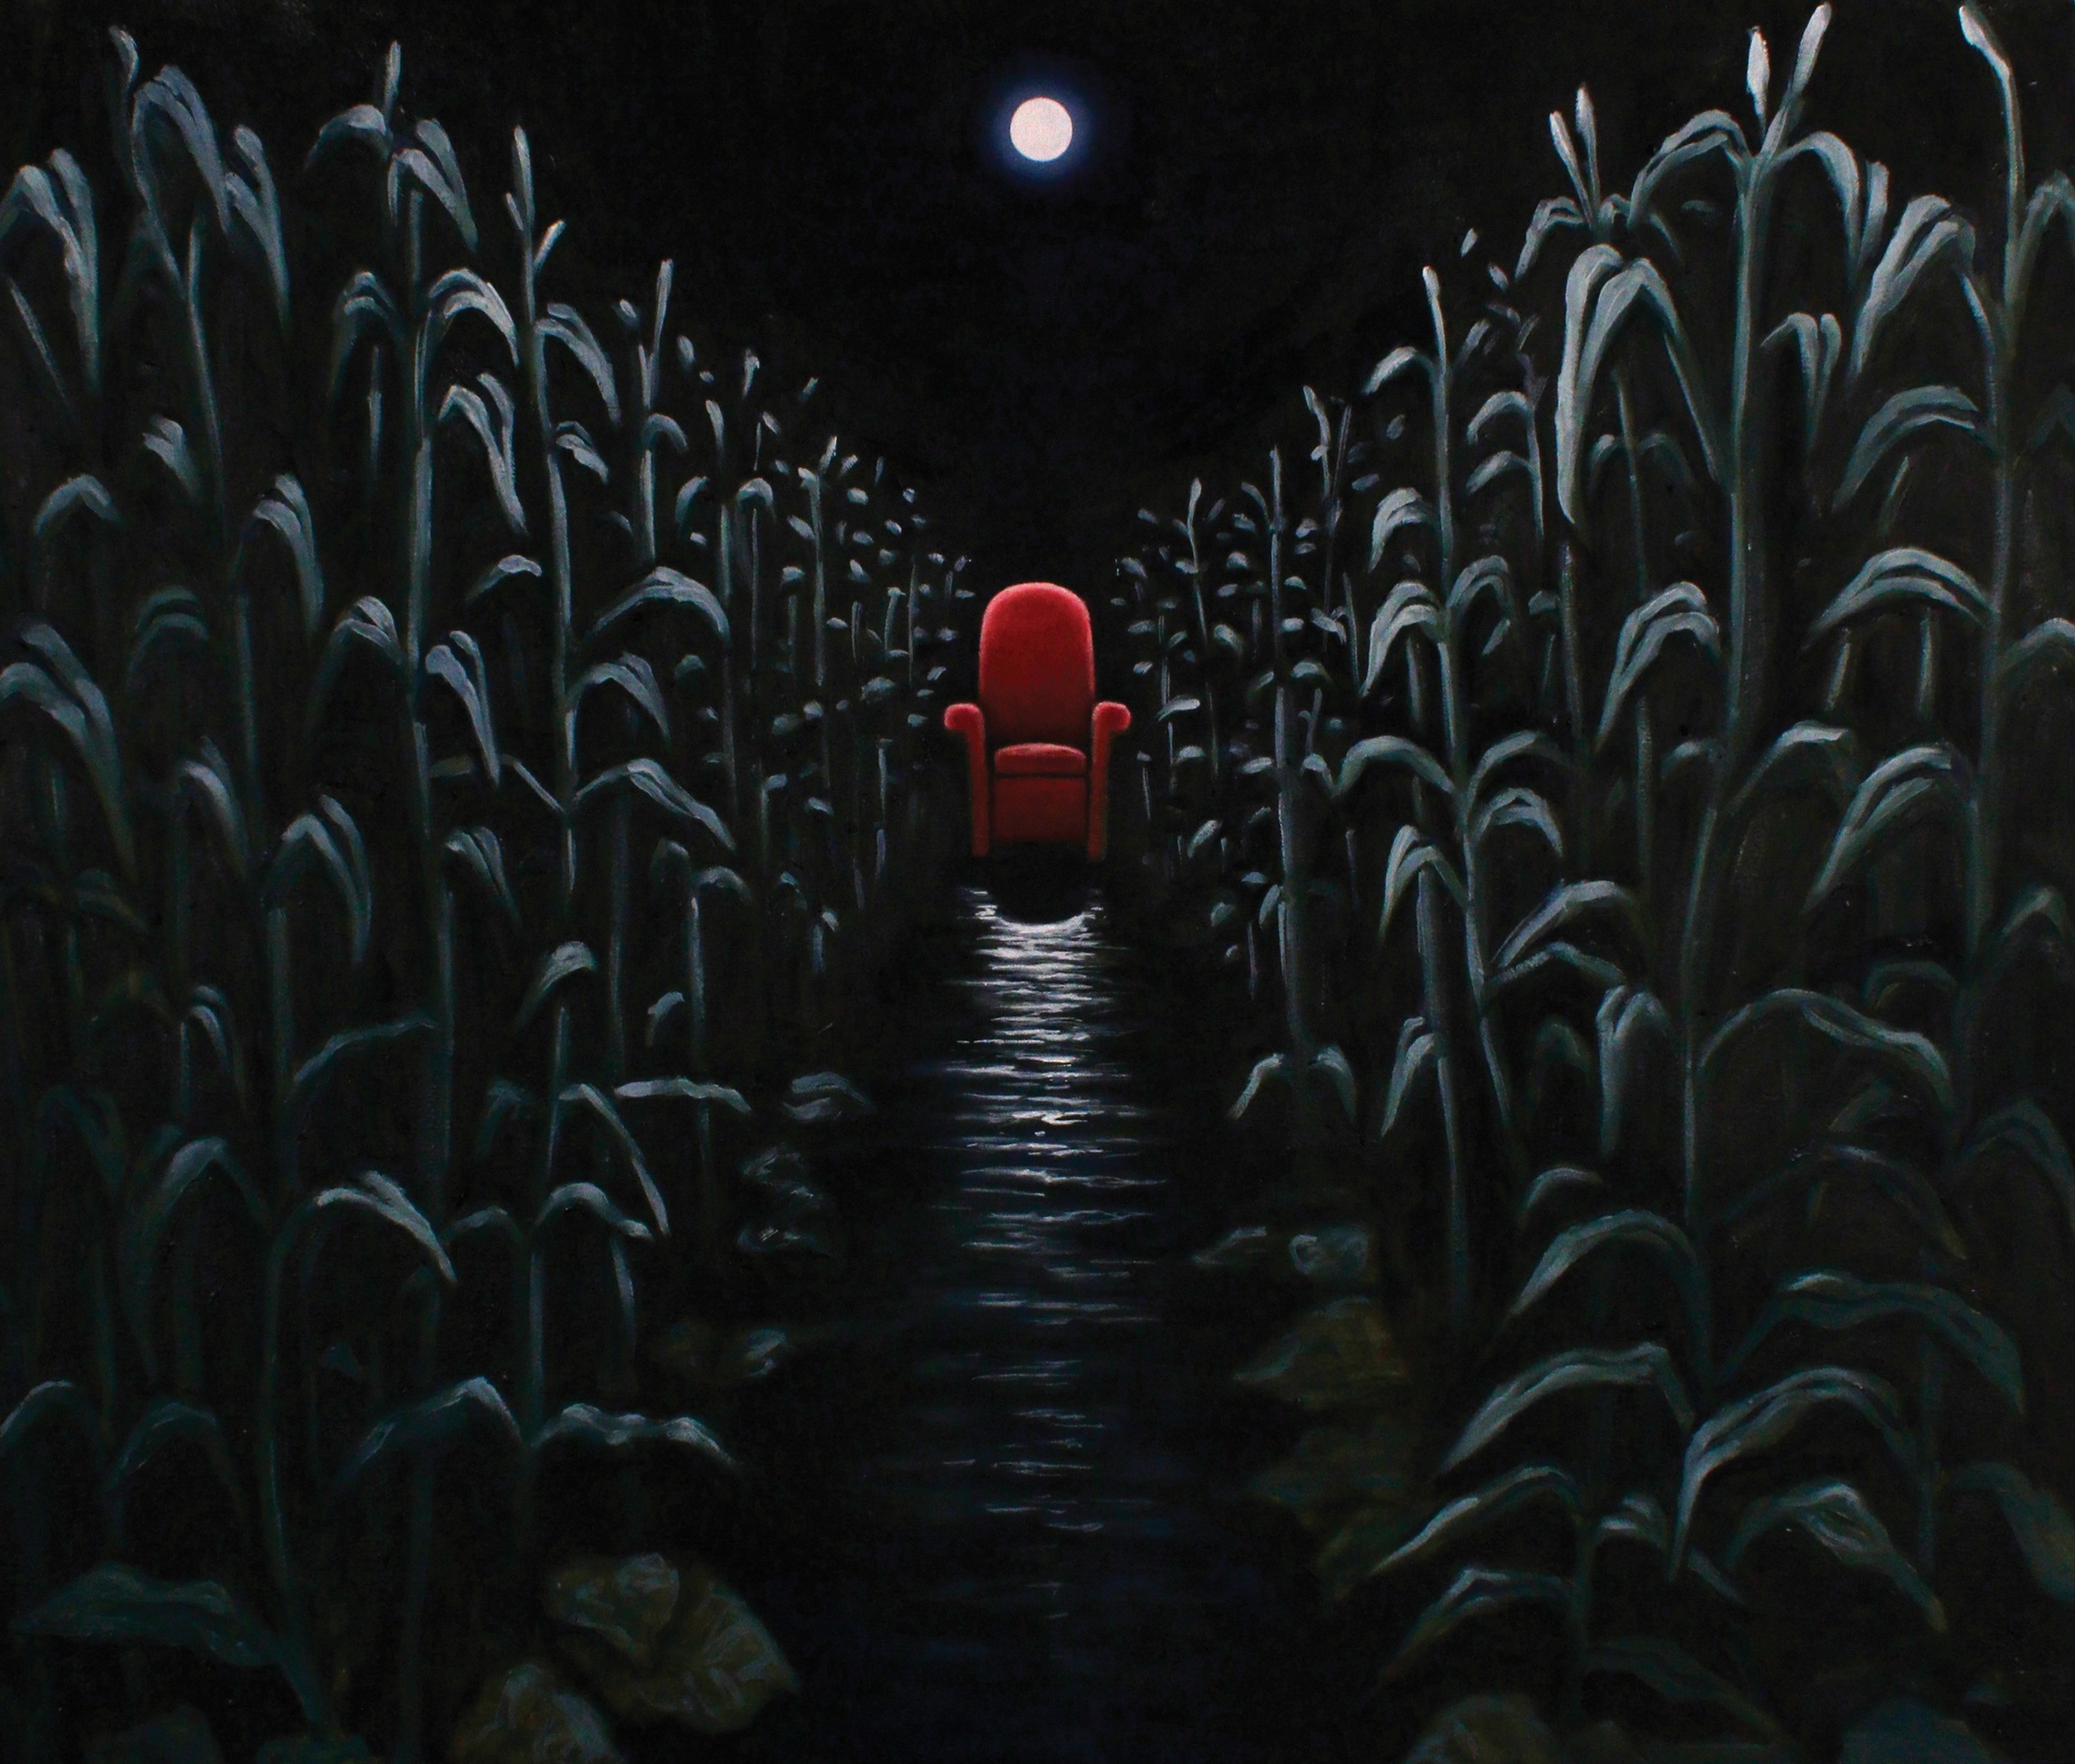 A red throne sits under a clear night sky with a bright full moon directly above it. It is a dark evening, but the moon shines clearly on the corn stalks that stand tall to either side of the chair. The line the water pathway from the viewer to this red t